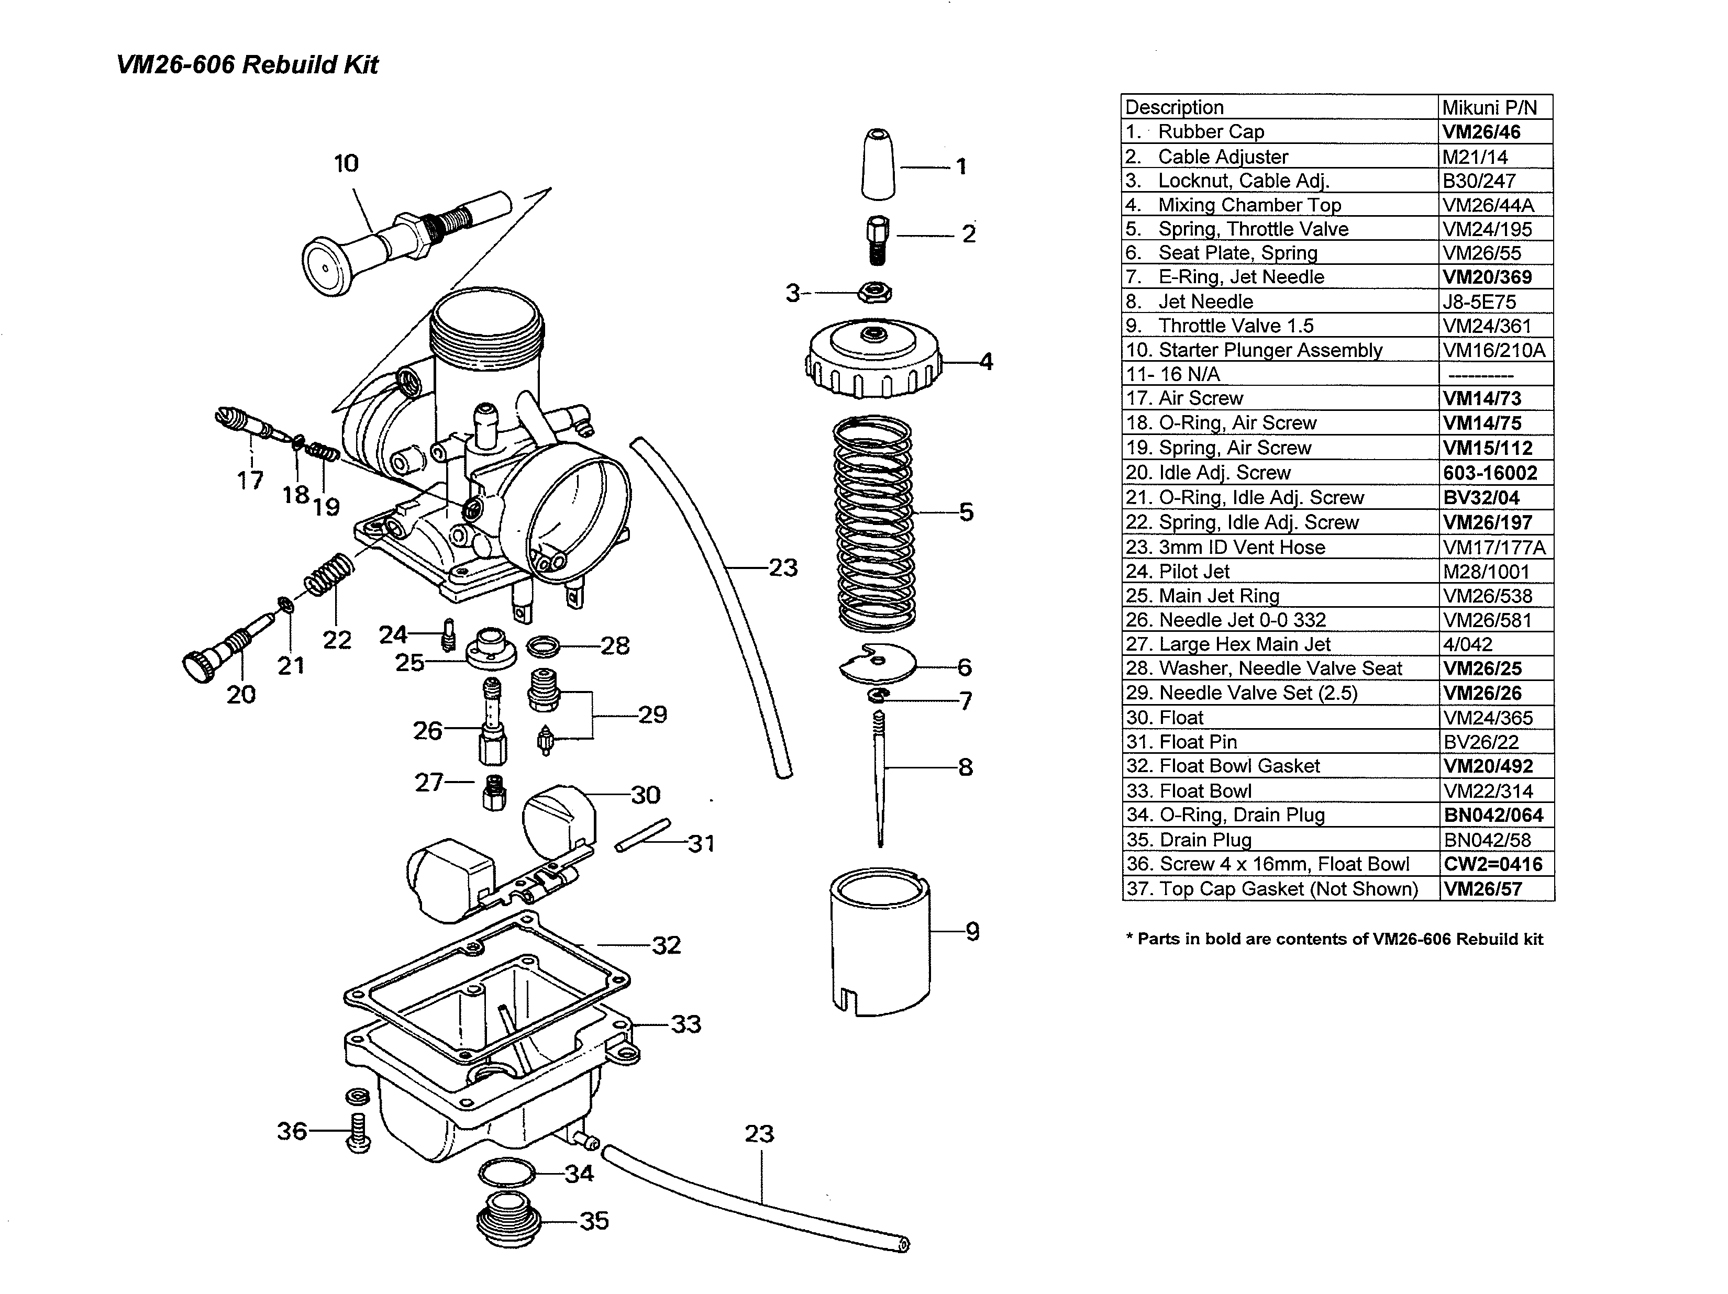 suzuki mikuni carburetor diagram  suzuki  free engine image for user manual download